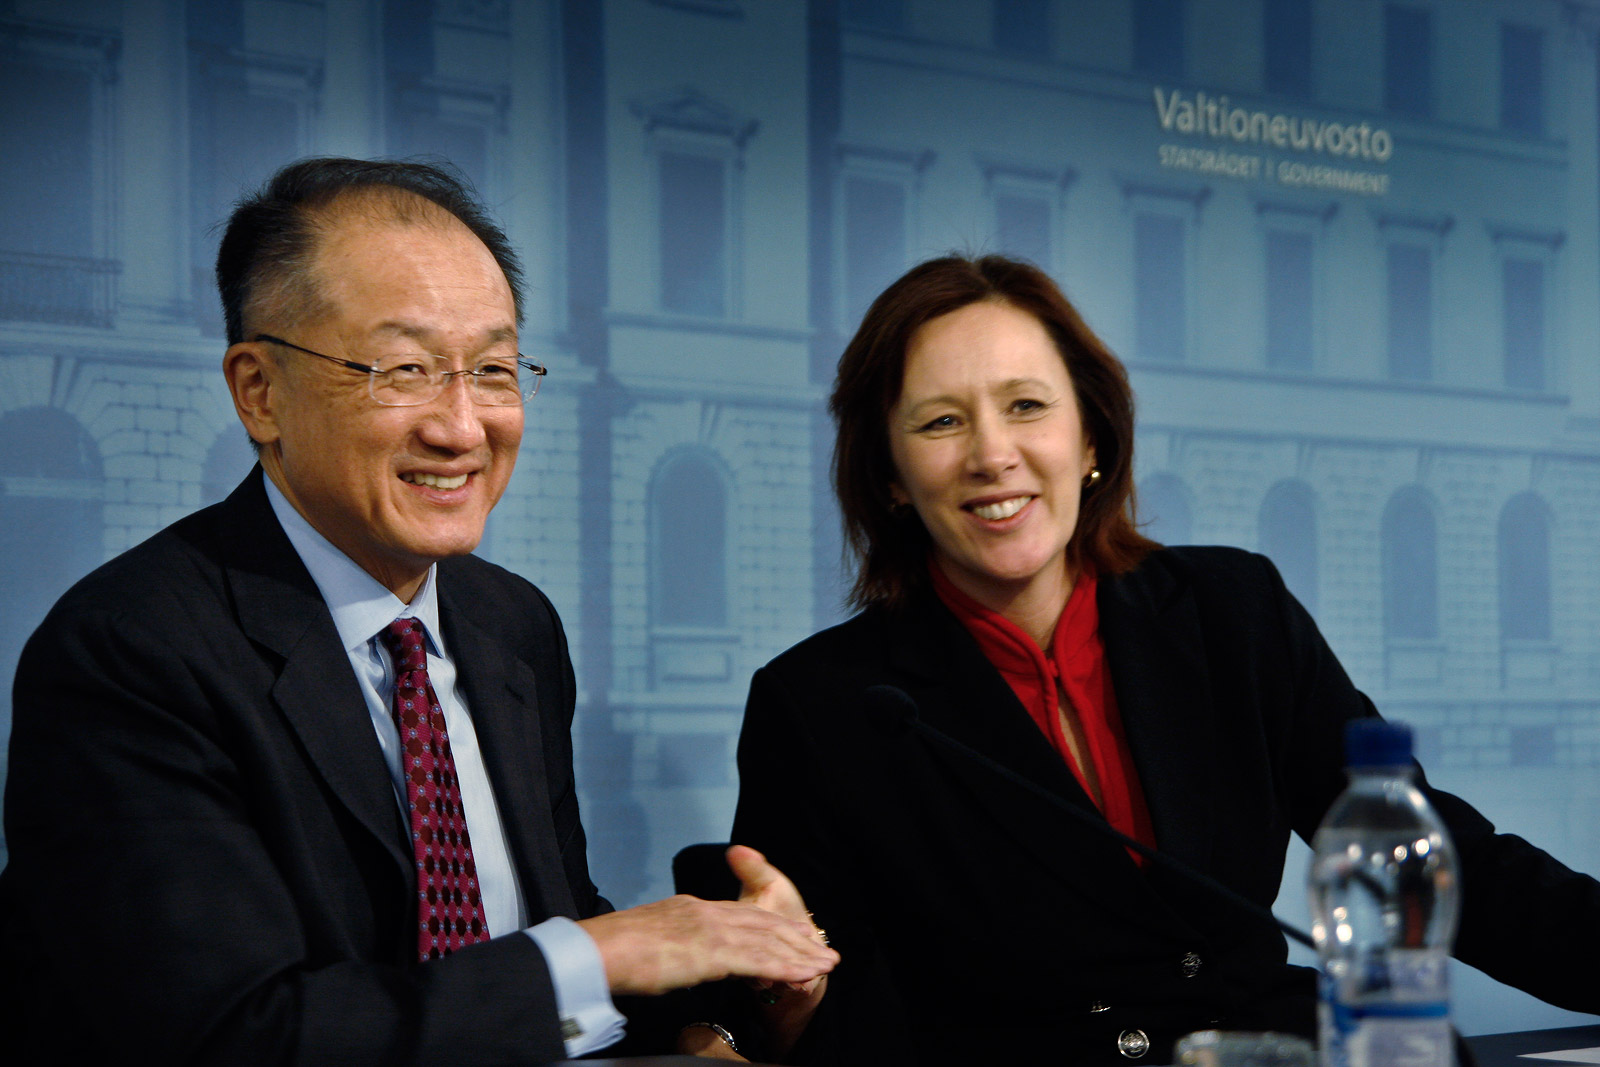 Jim Yong Kim, the president of World Bank, meets with Sirpa Paatero, the minister of international development, at the Government Palace, in Helsinki, Finland on Wednesday, February 11 2015. Picture: Tony Öhberg for Finland Today